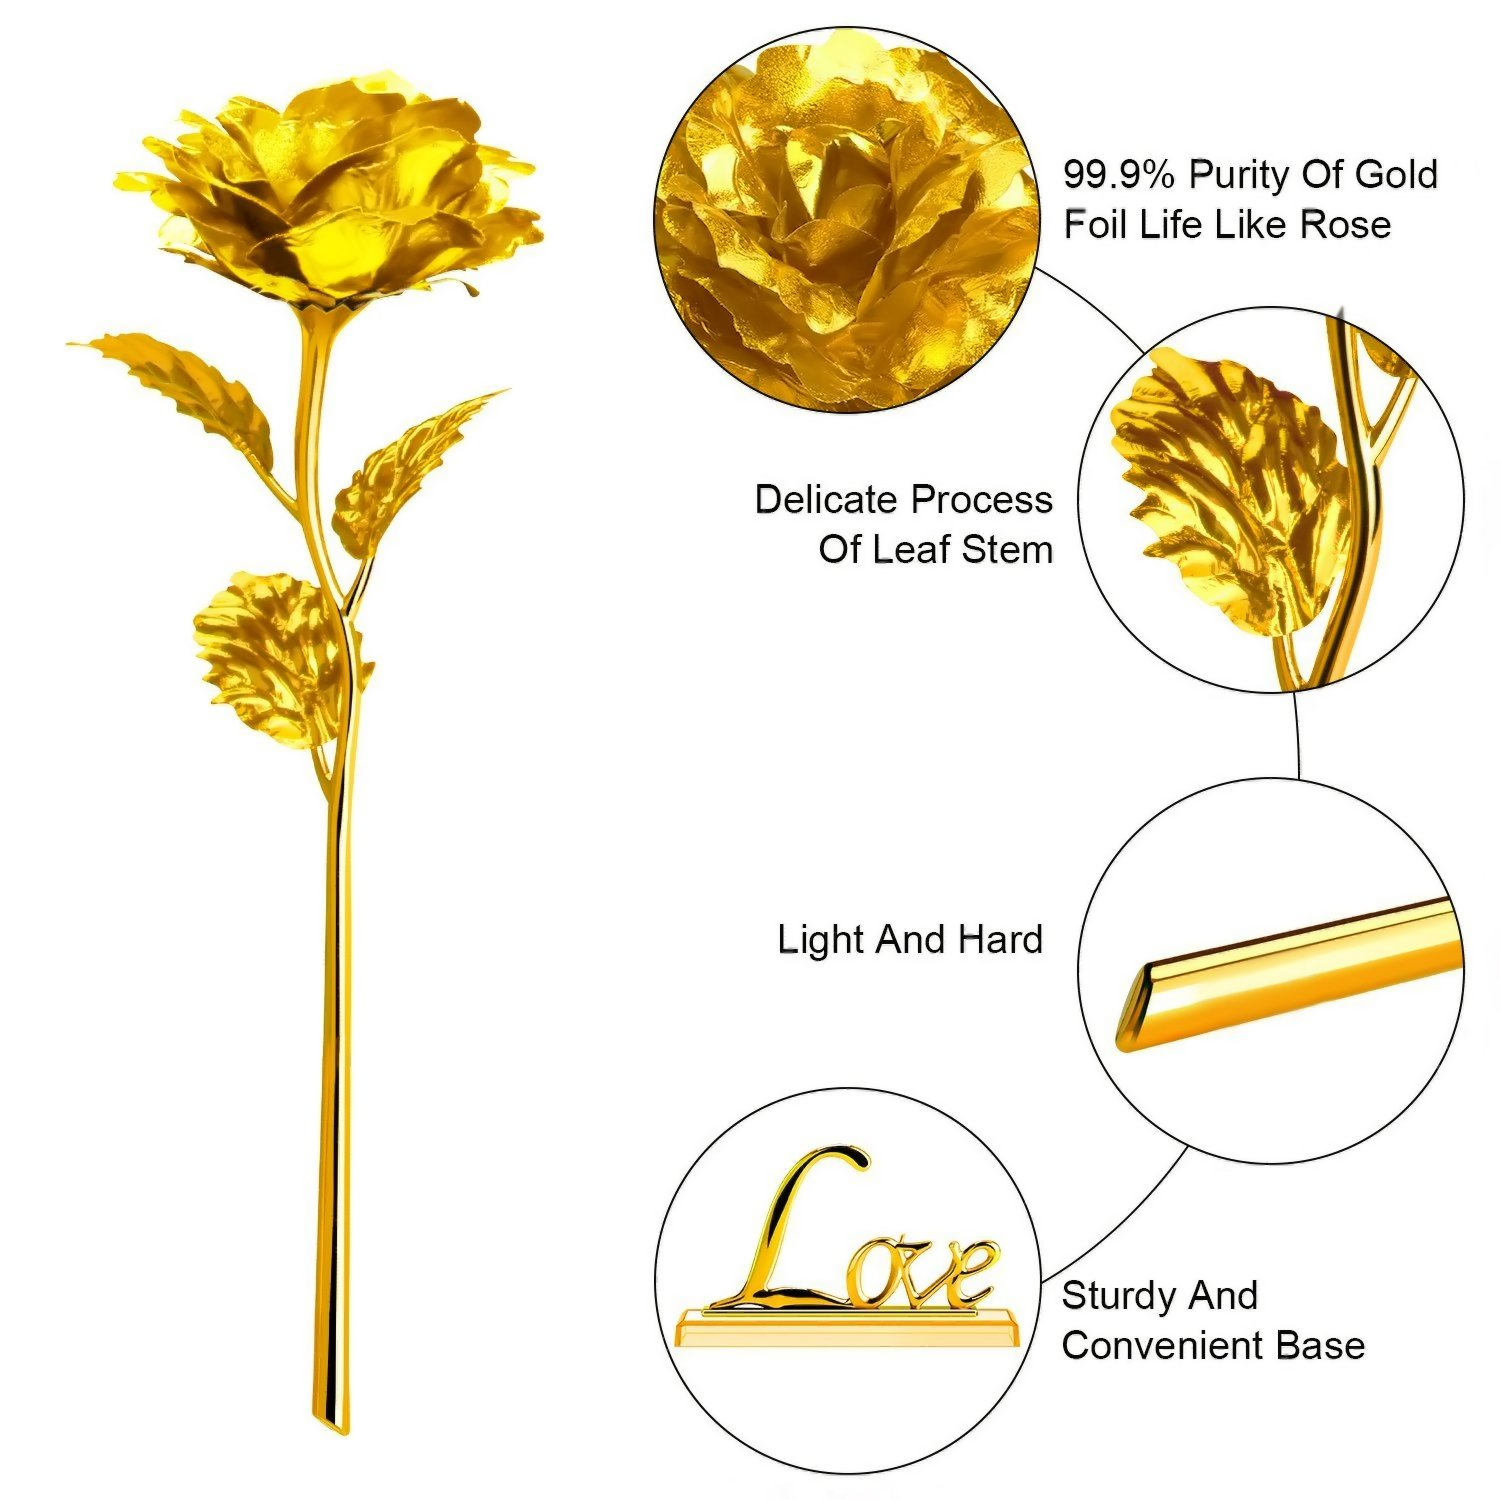 ProCIV Gold Roses, 24K Gold Foil Decoration Artificial Rose Flowers in Gift Box, Best Gift for Mother's Day, Valentine's Day, Wedding Day, Birthday, Christmas, Thanksgiving, Home Decor by ProCIV (Image #3)